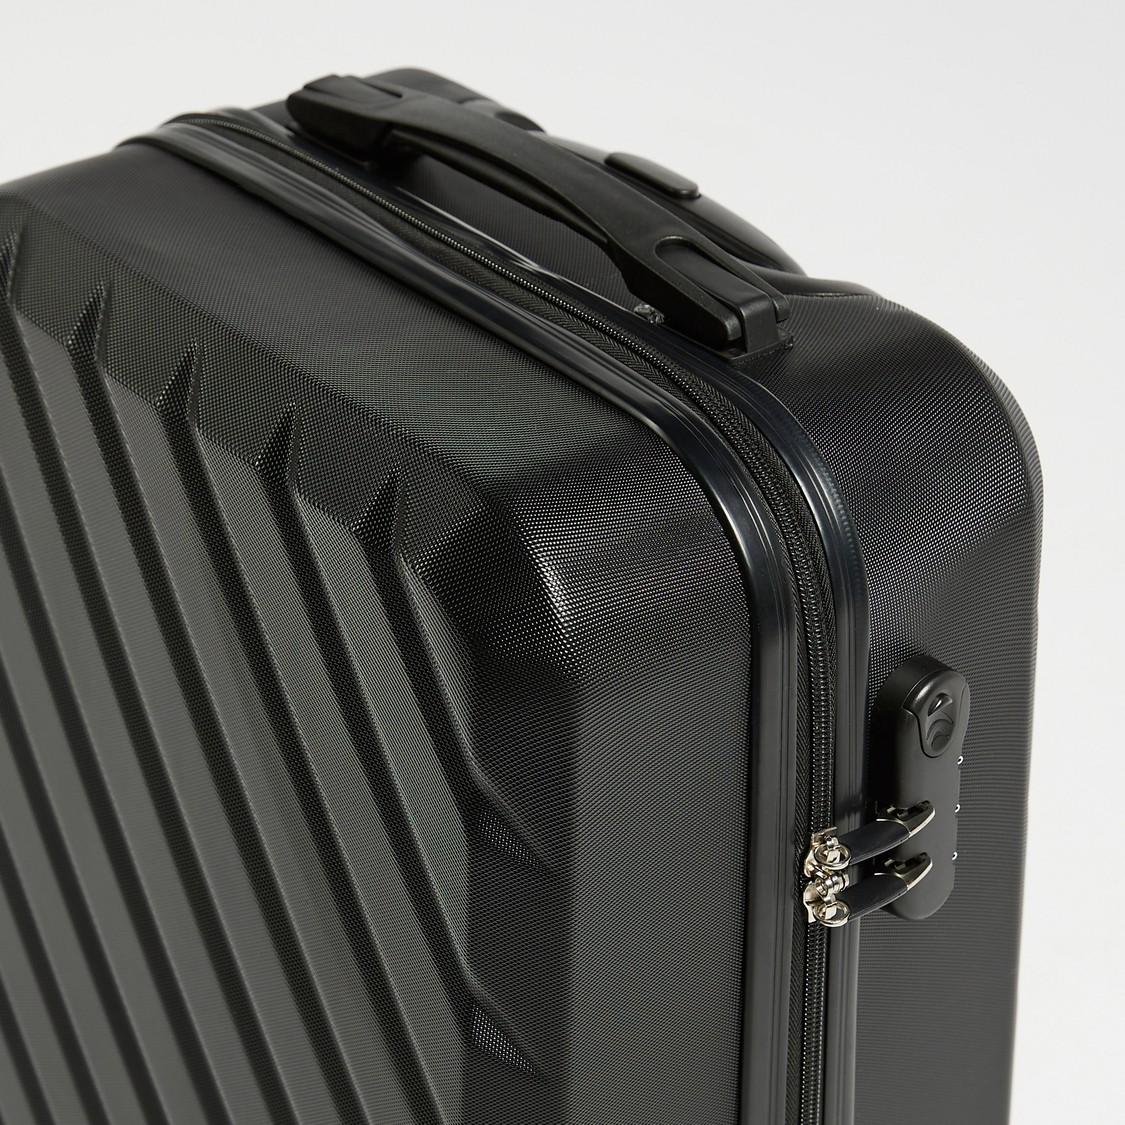 Textured Hard Suit Case Trolley Bag with Caster Wheels - 38x23x55 cms